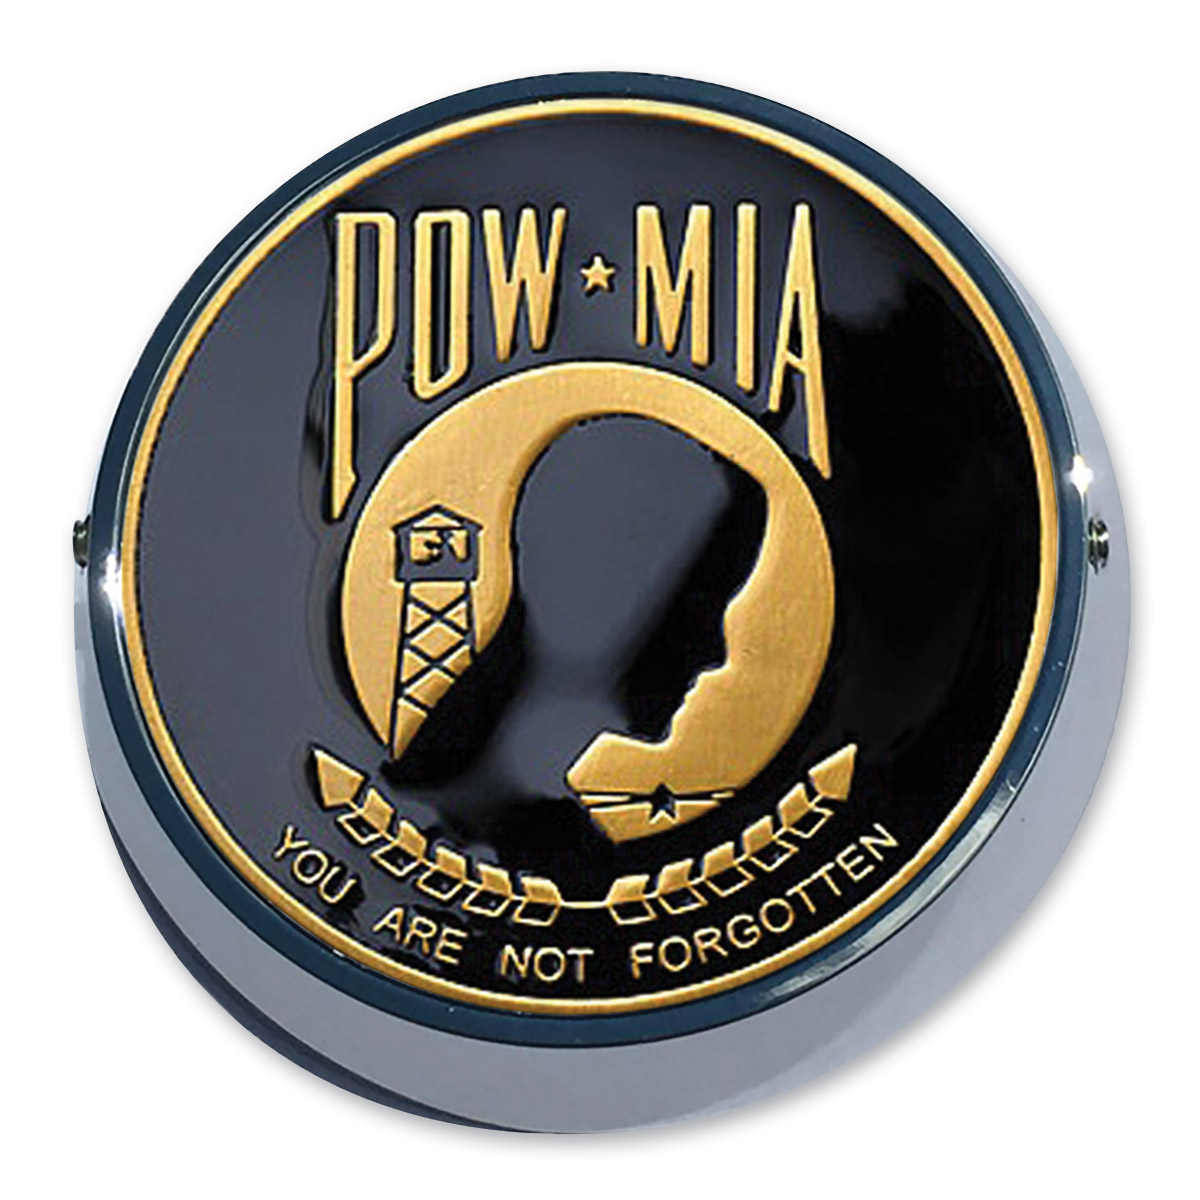 Motordog69 Universal Coin Mount with POW-MIA Coin